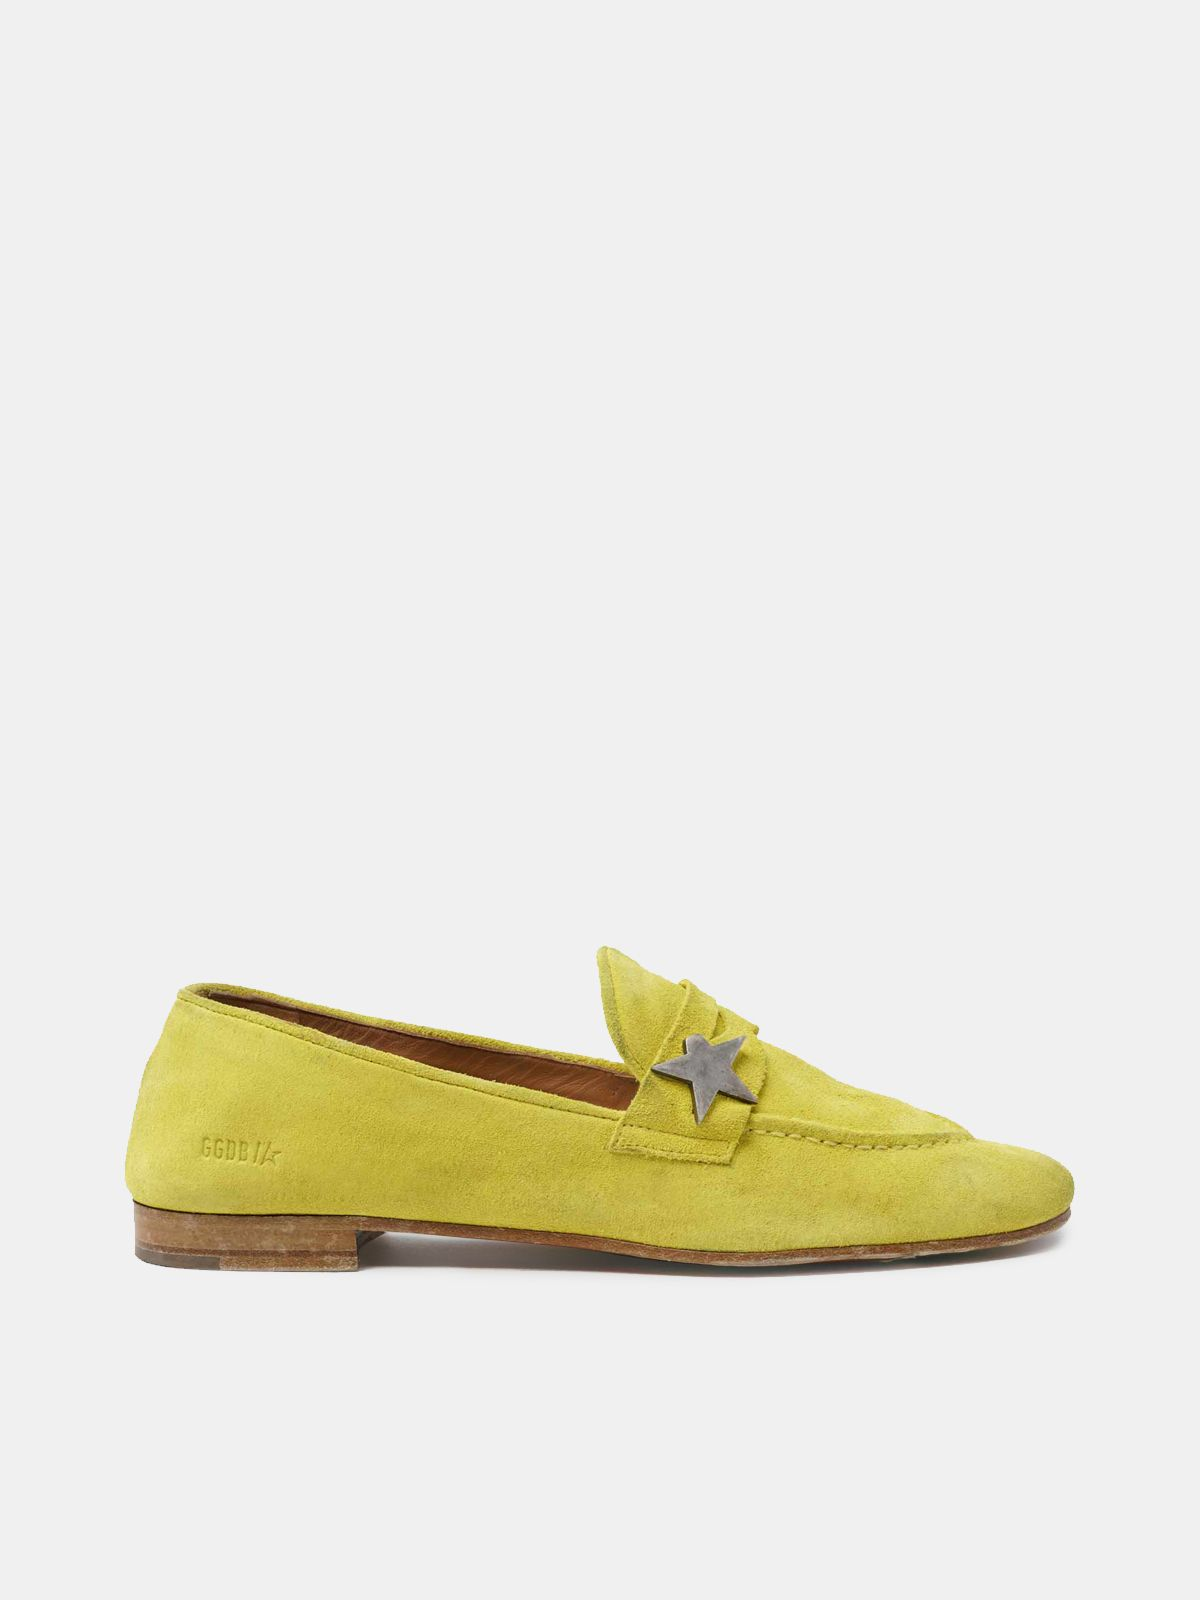 Virginia loafers in yellow suede leather